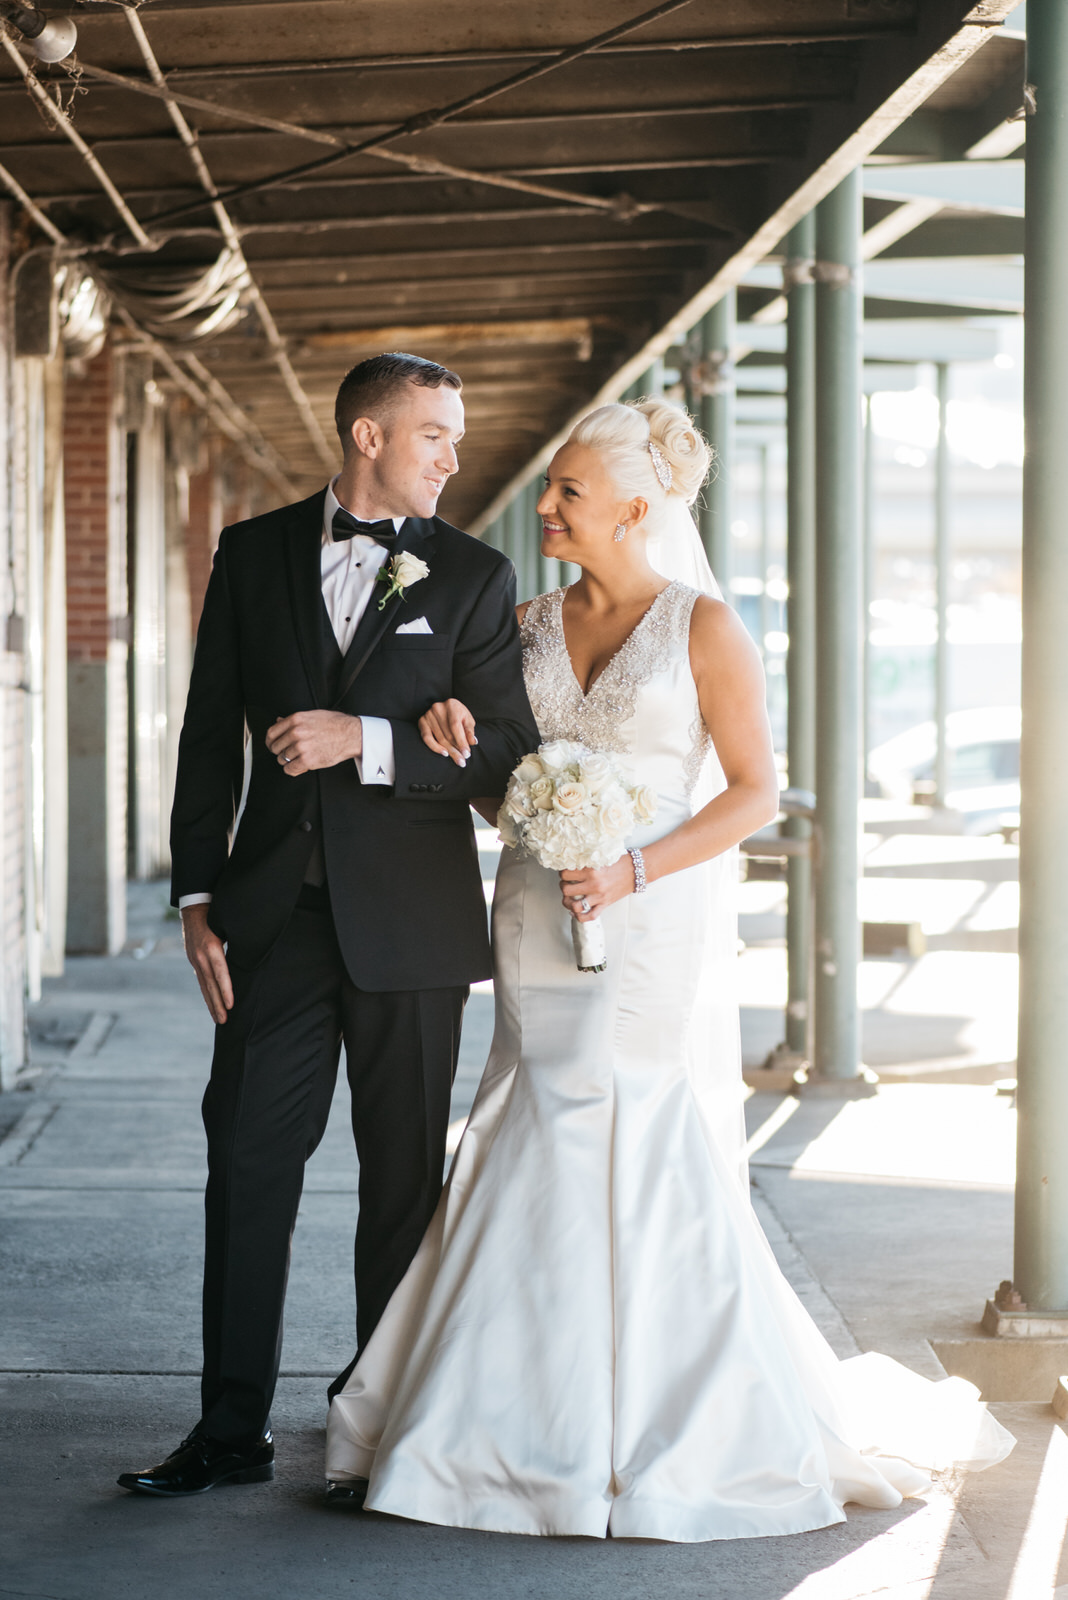 hilton_garden_inn_southpointe_pittsburgh_weddings_62.jpg